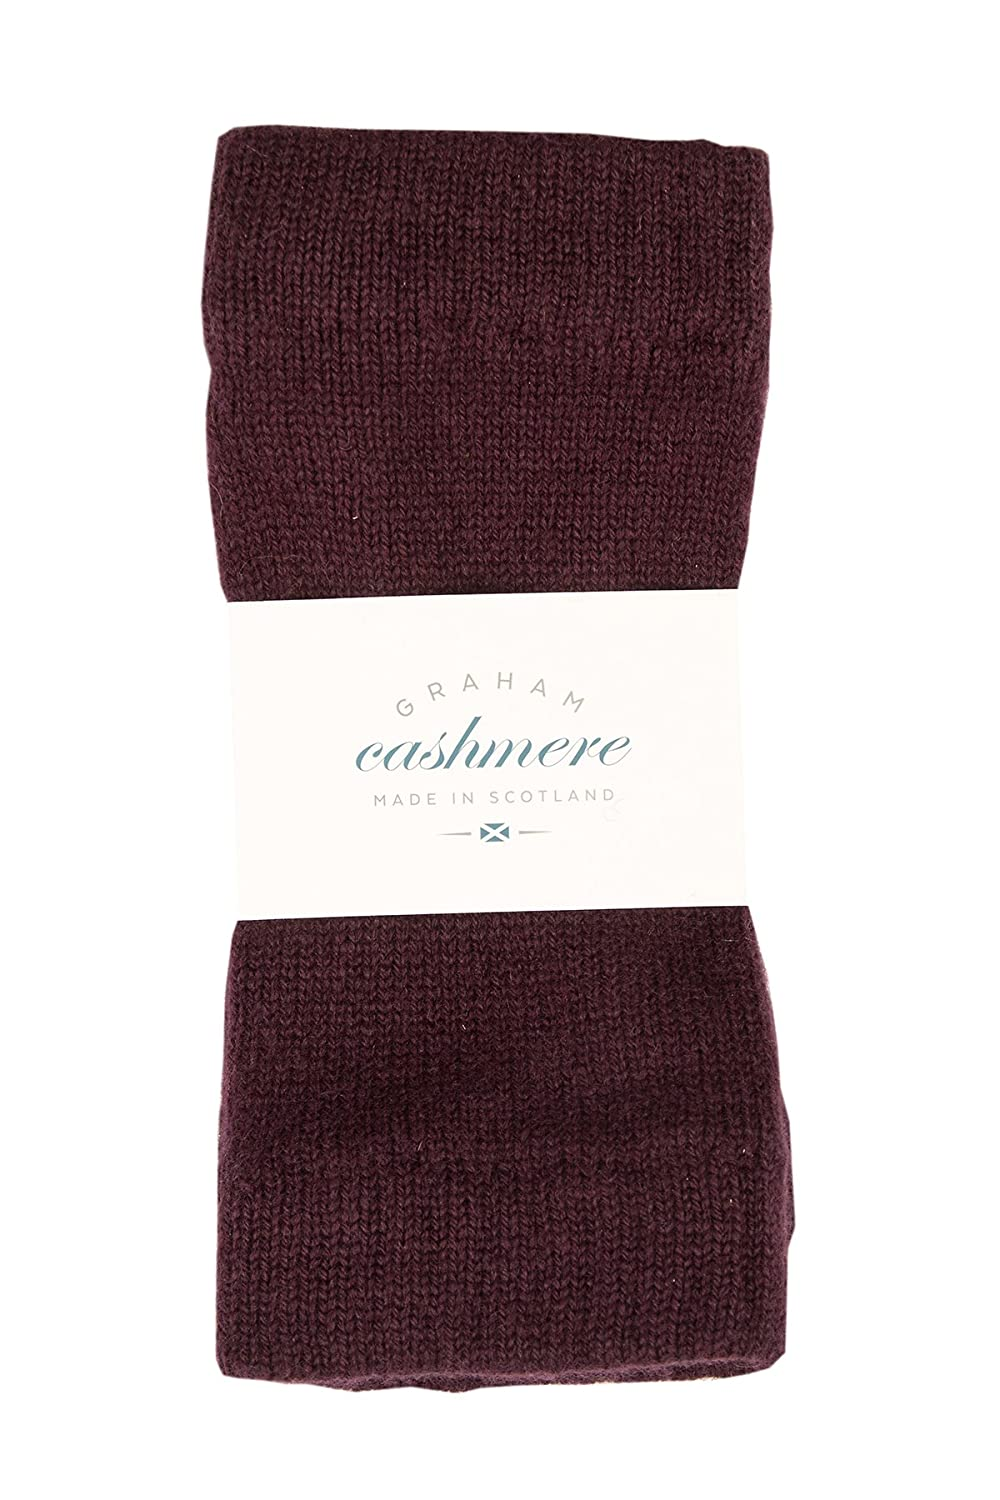 Graham Cashmere - Pure Cashmere Fingerless Wrist Warmers - Made in Scotland - Gift Boxed